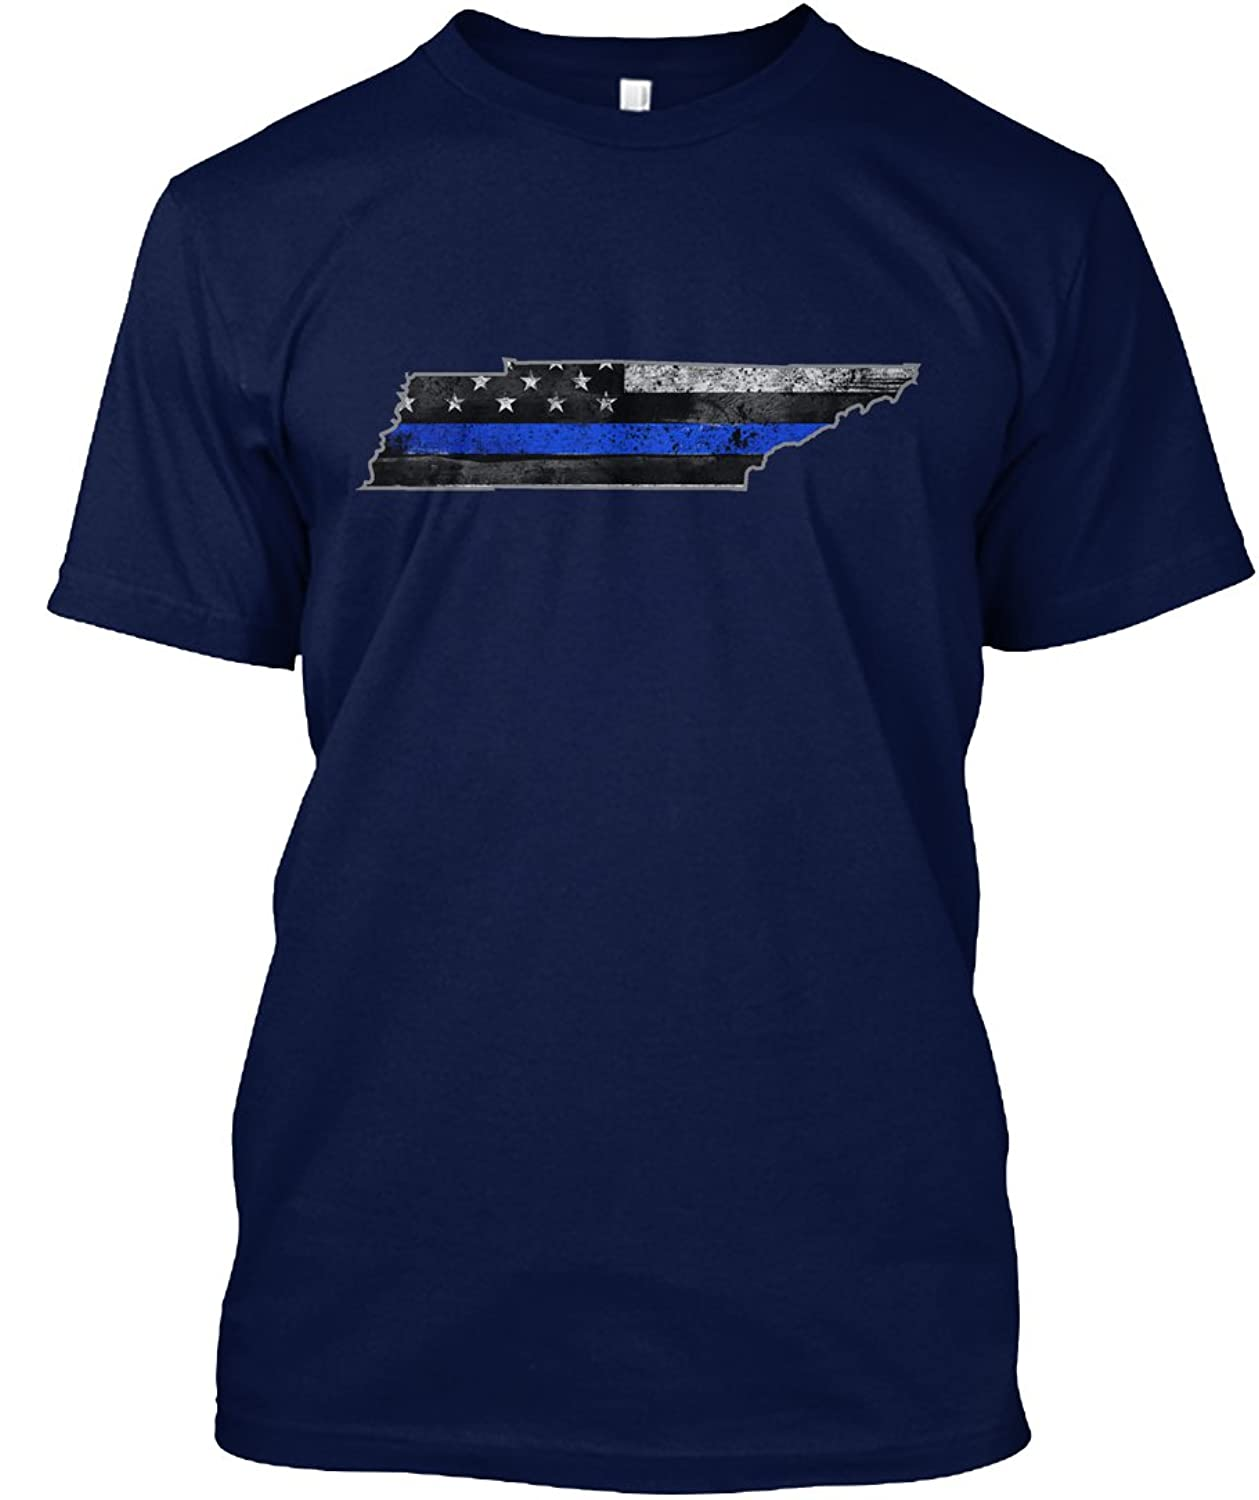 Teespring Unisex Tennessee Thin Blue Line Hanes Tagless T-Shirt